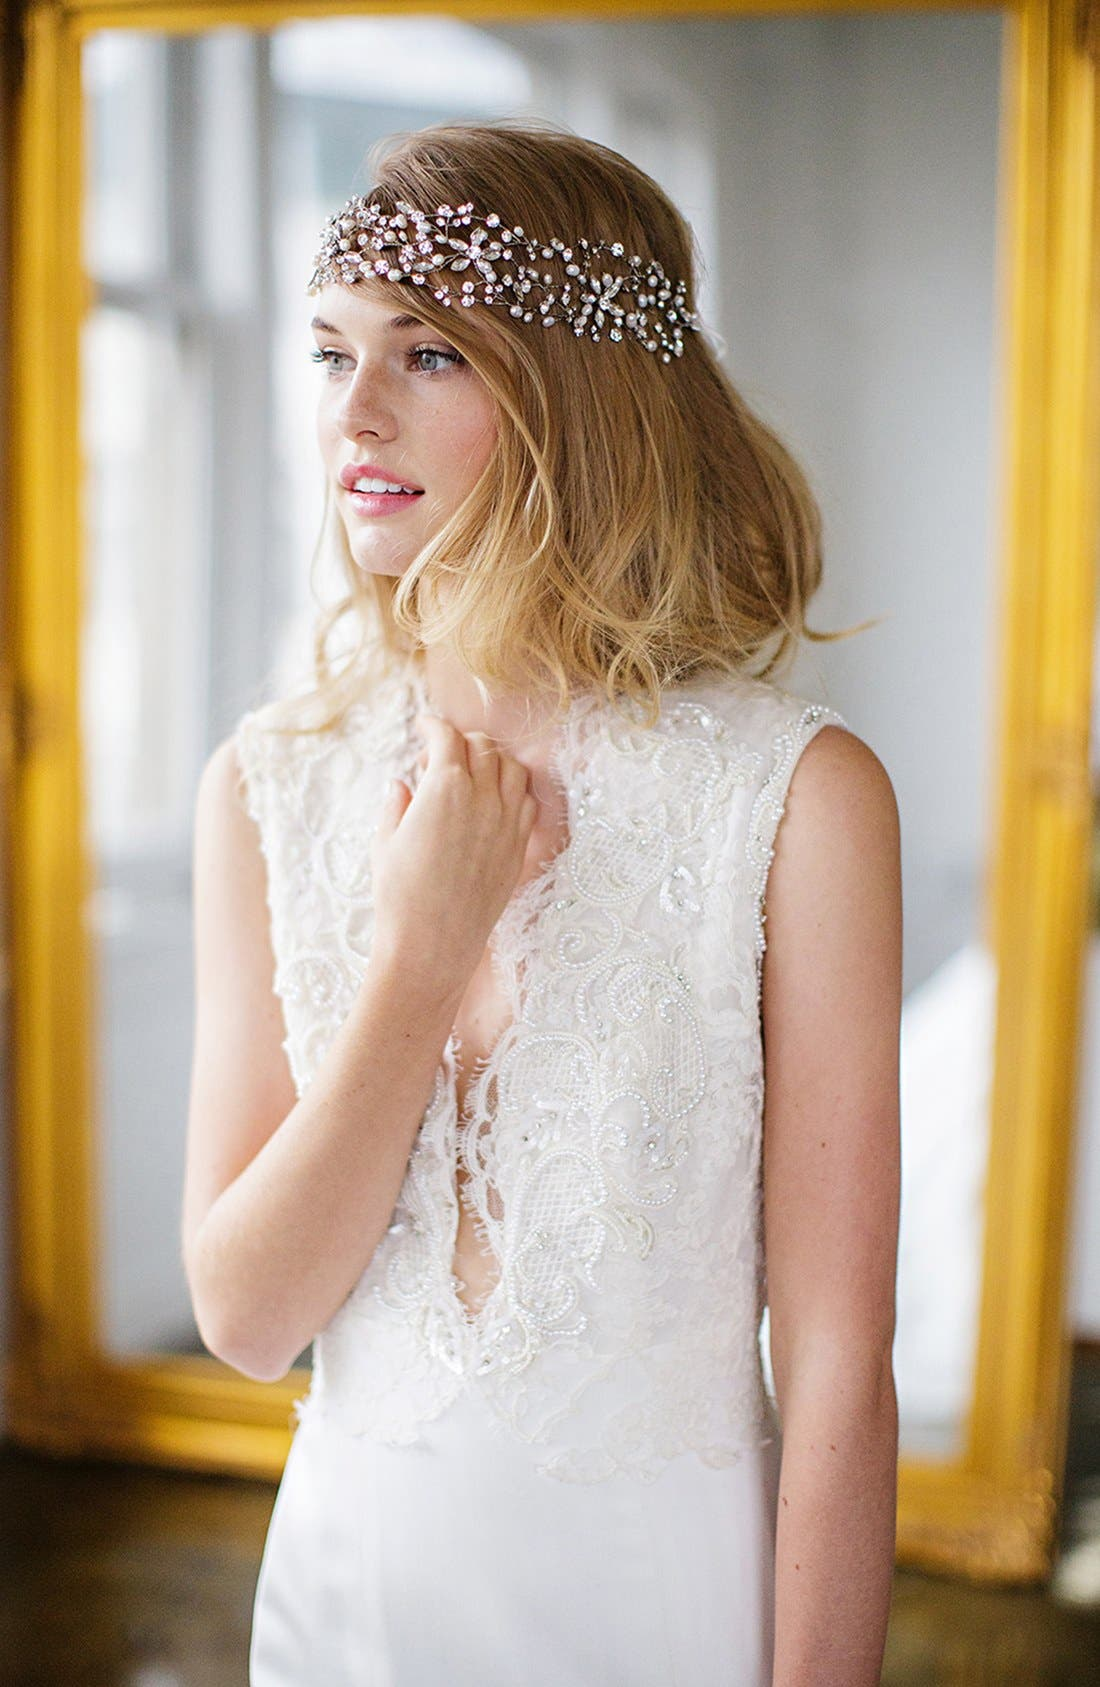 Main Image - Brides & Hairpins 'Thalia' Pearl & Jeweled Head Band